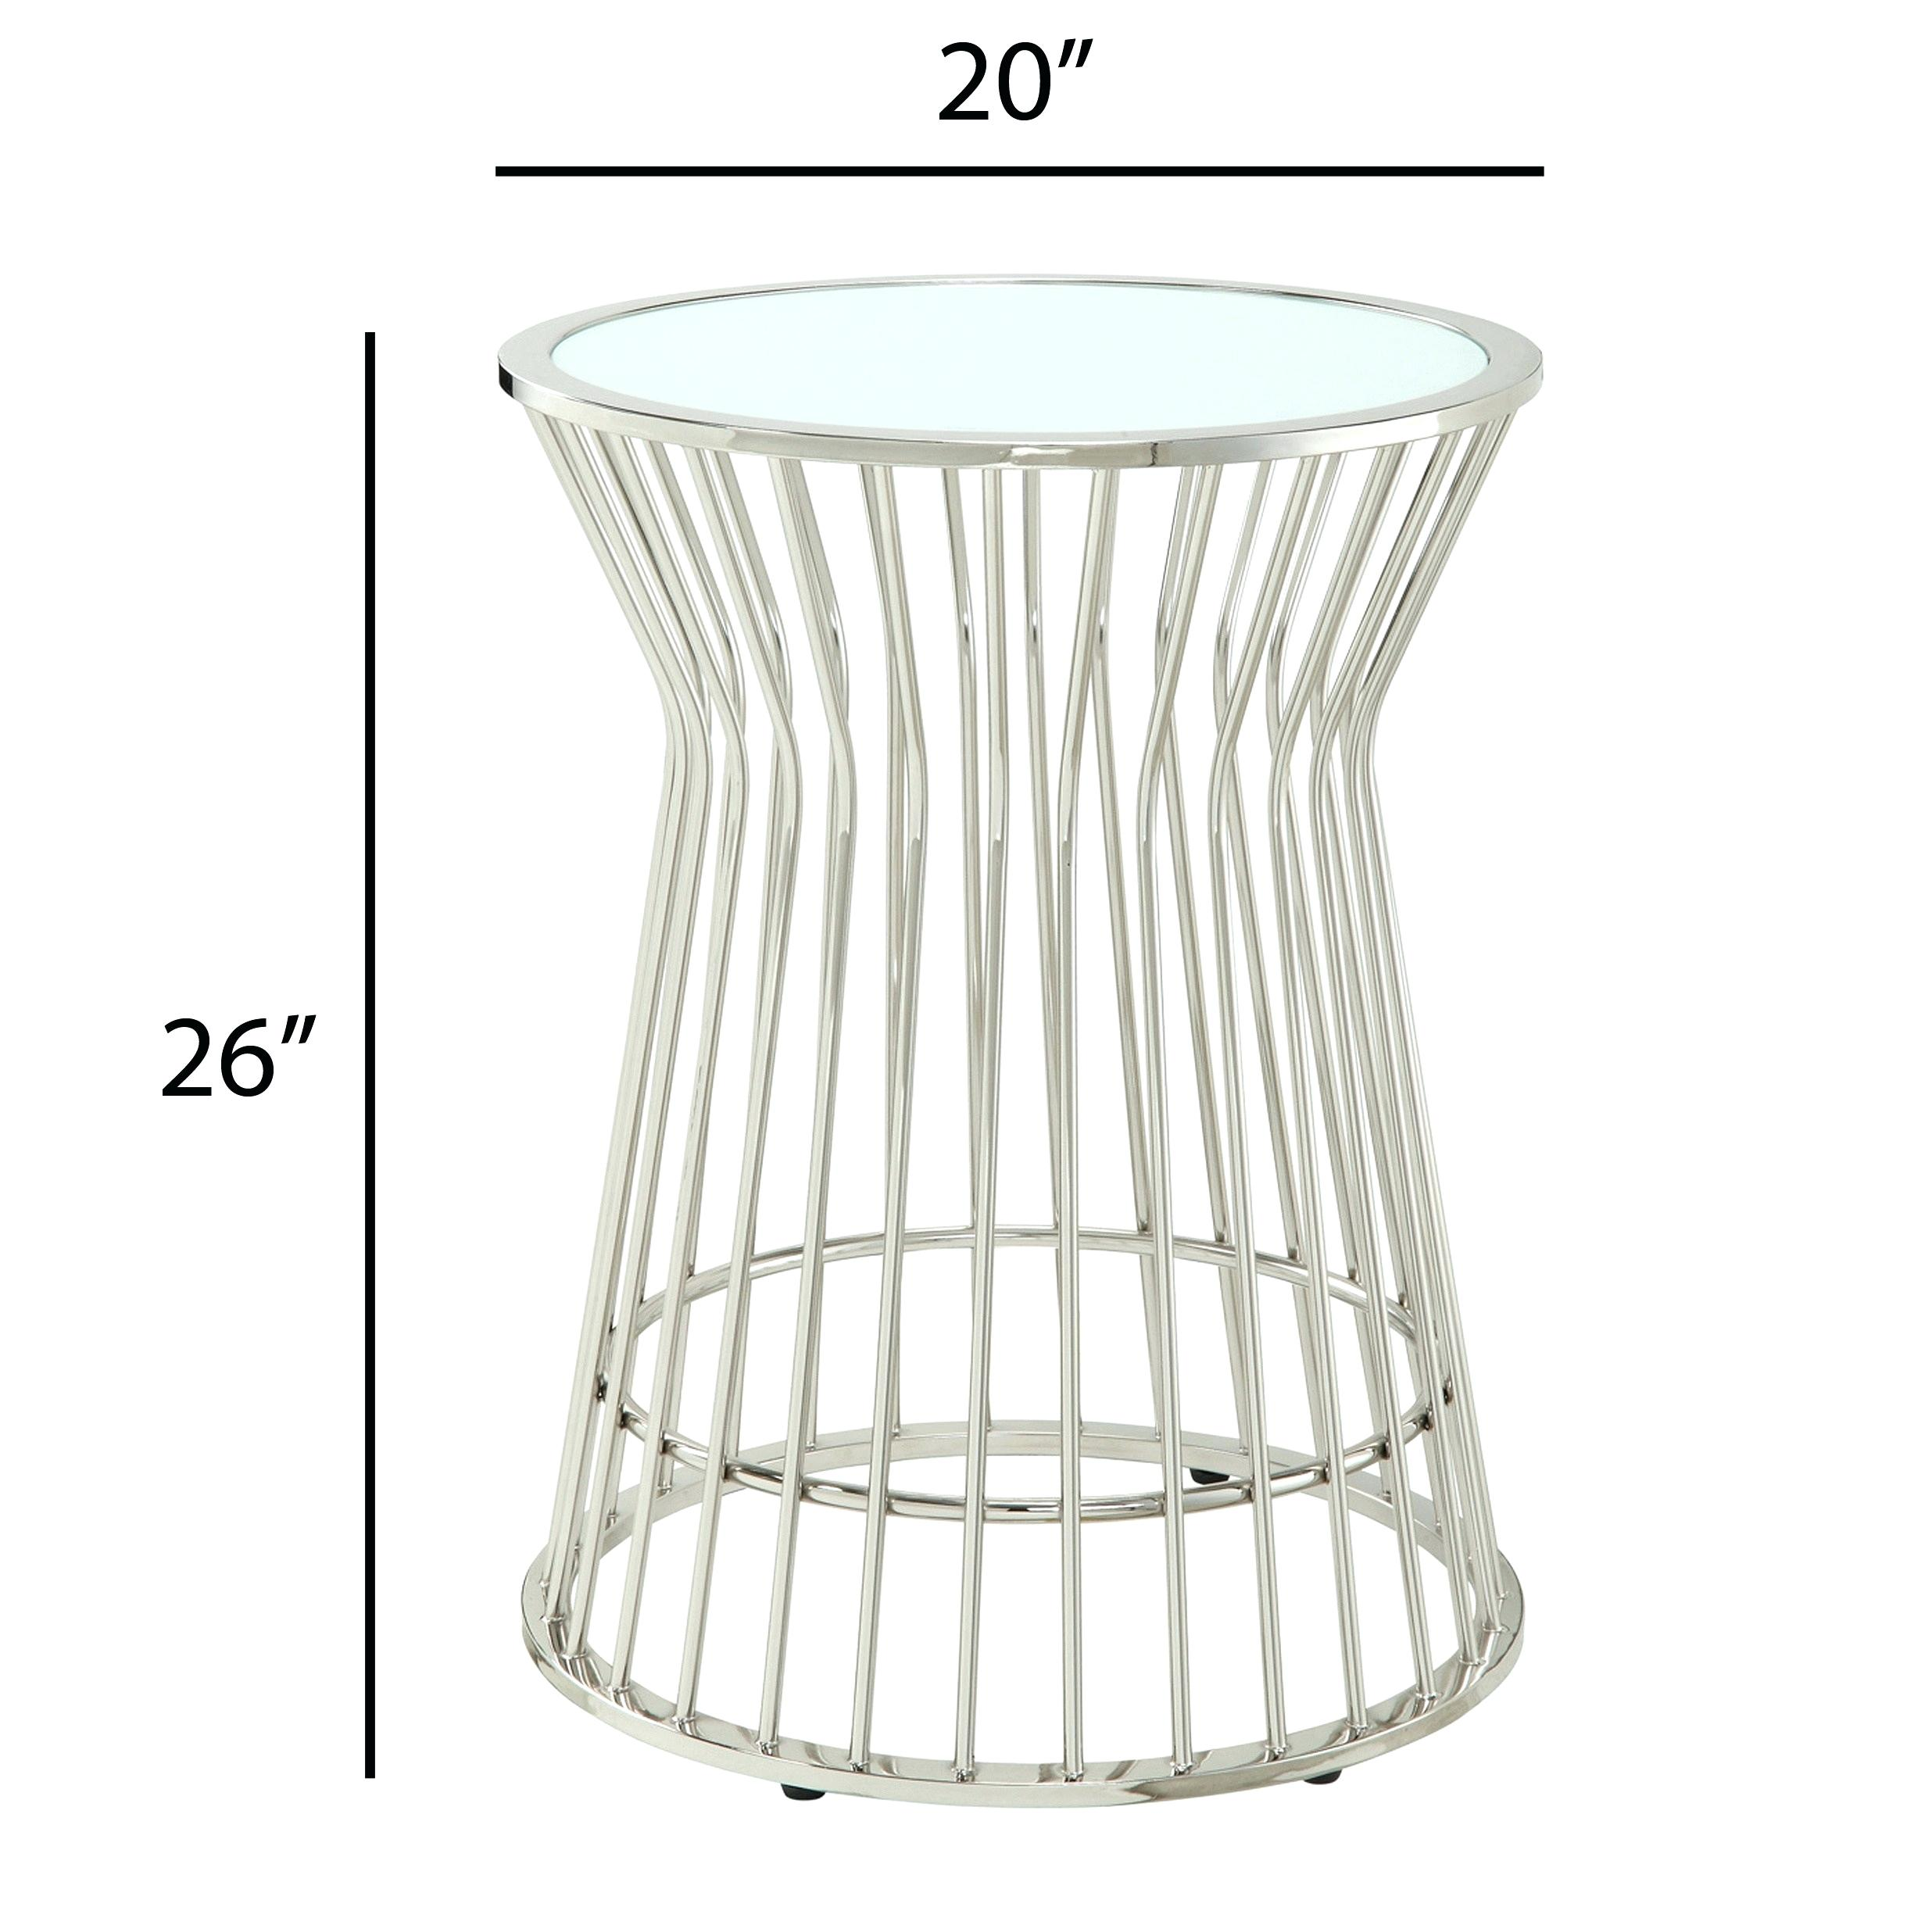 drum accent table target storage threshold silver manila cylinder project metal outdoor jcpenney dishes kmart dining kitchen lighting narrow couch modern furniture mississauga